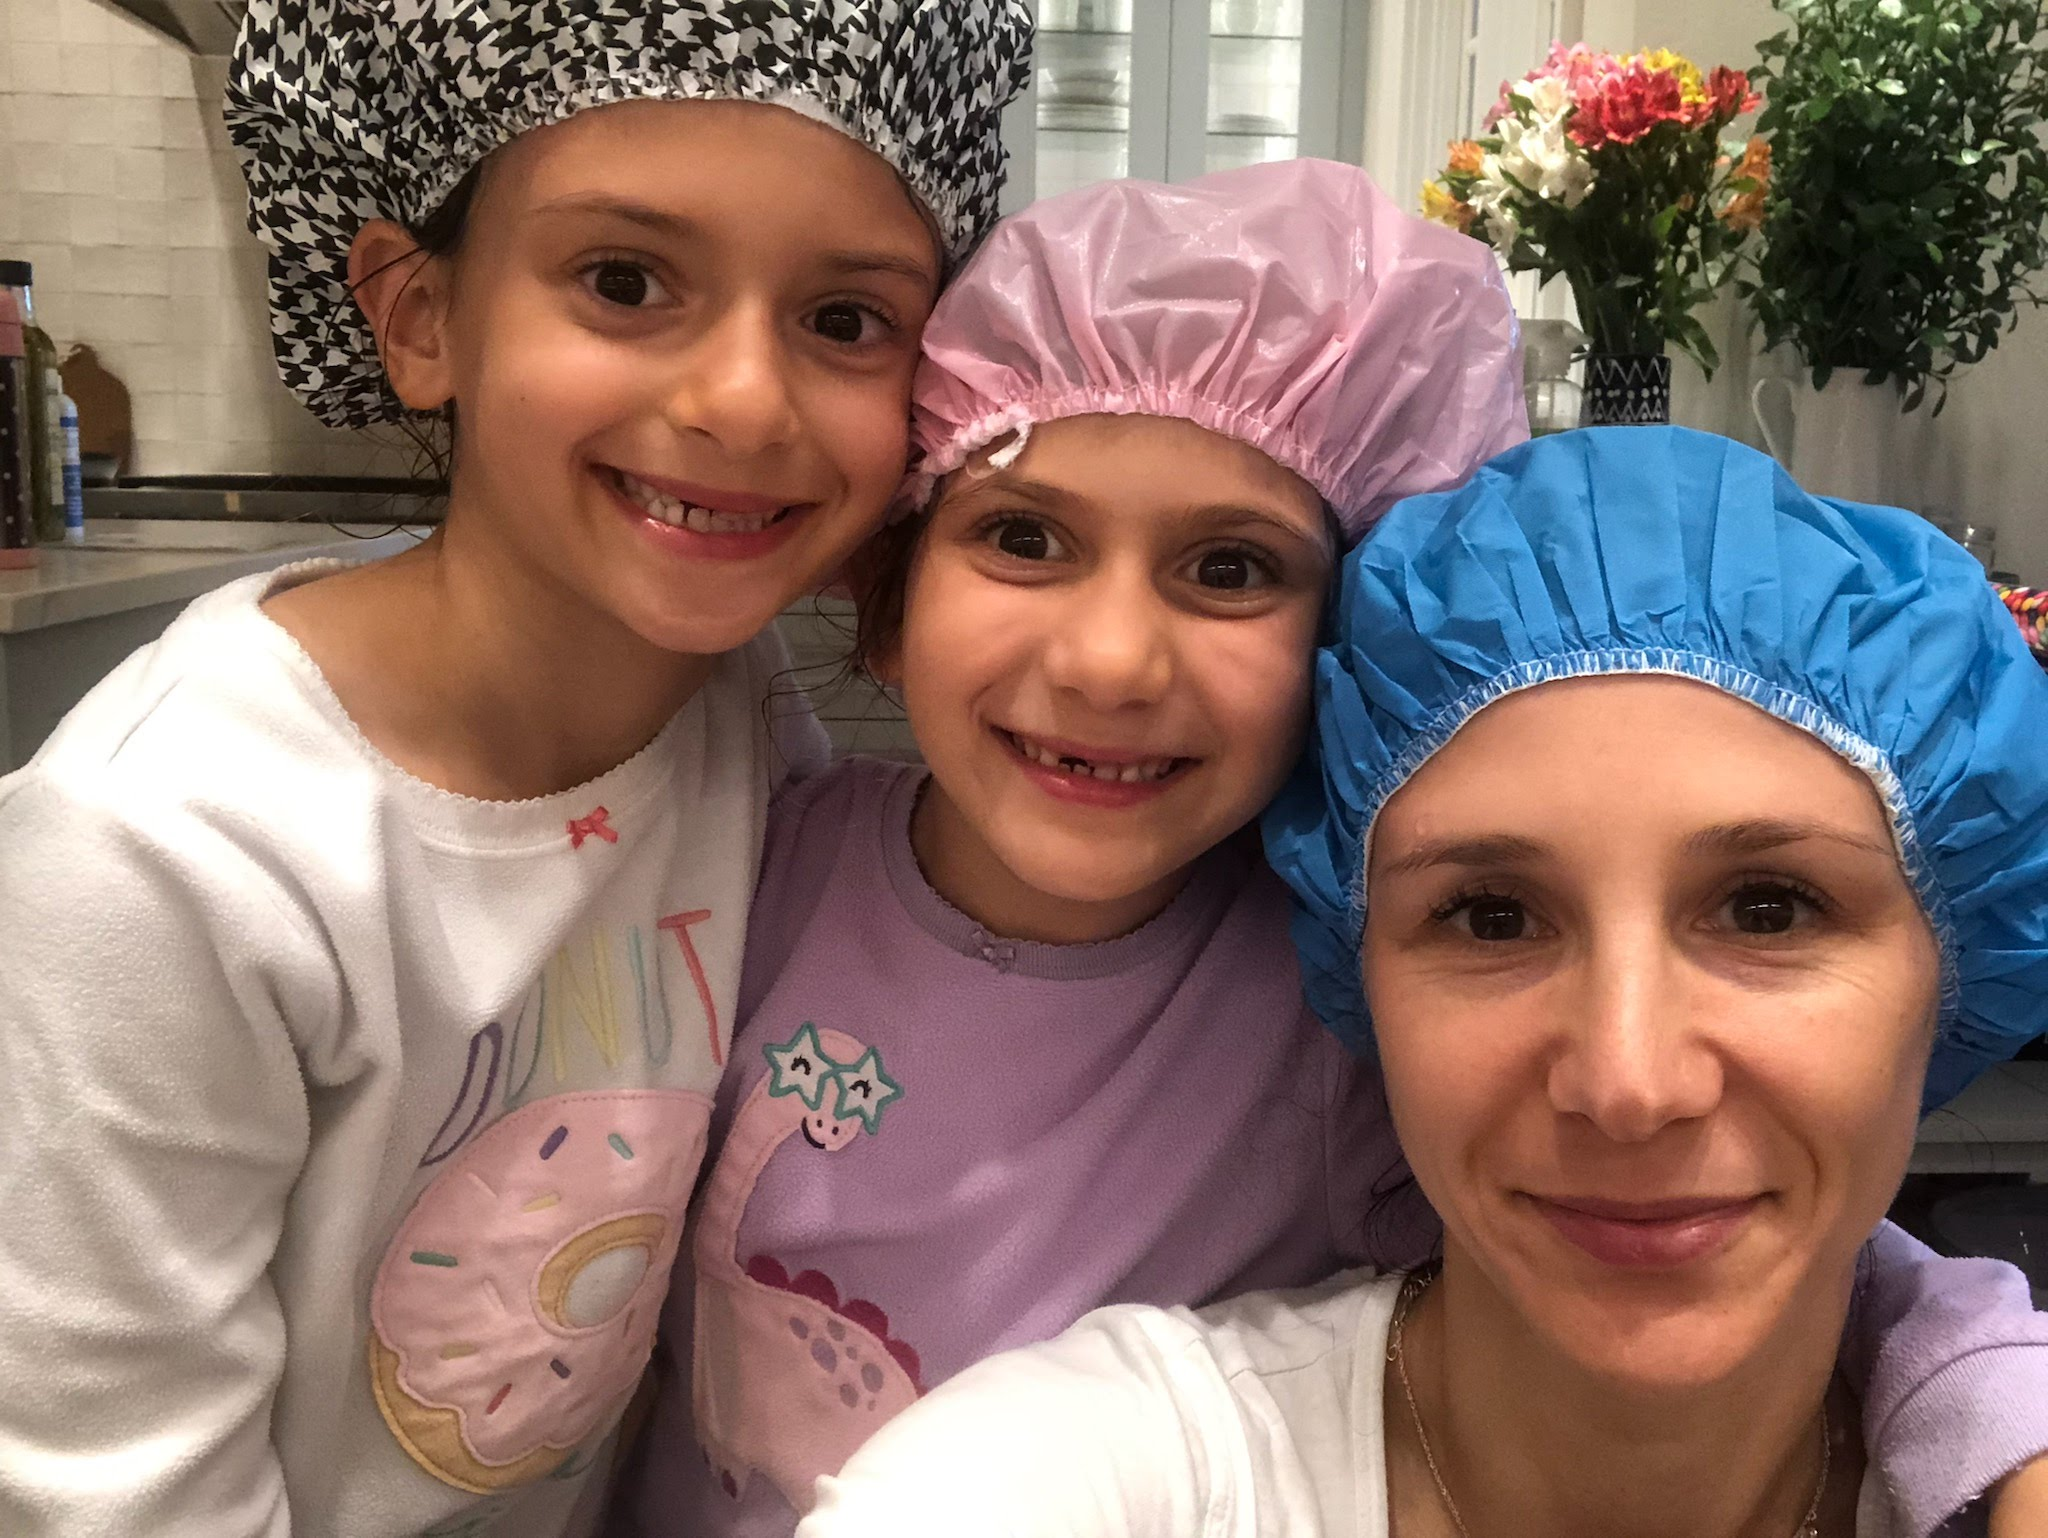 LiceDoctors Technician taking head-to-head selfie with two smiling little girls, all wearing shower caps